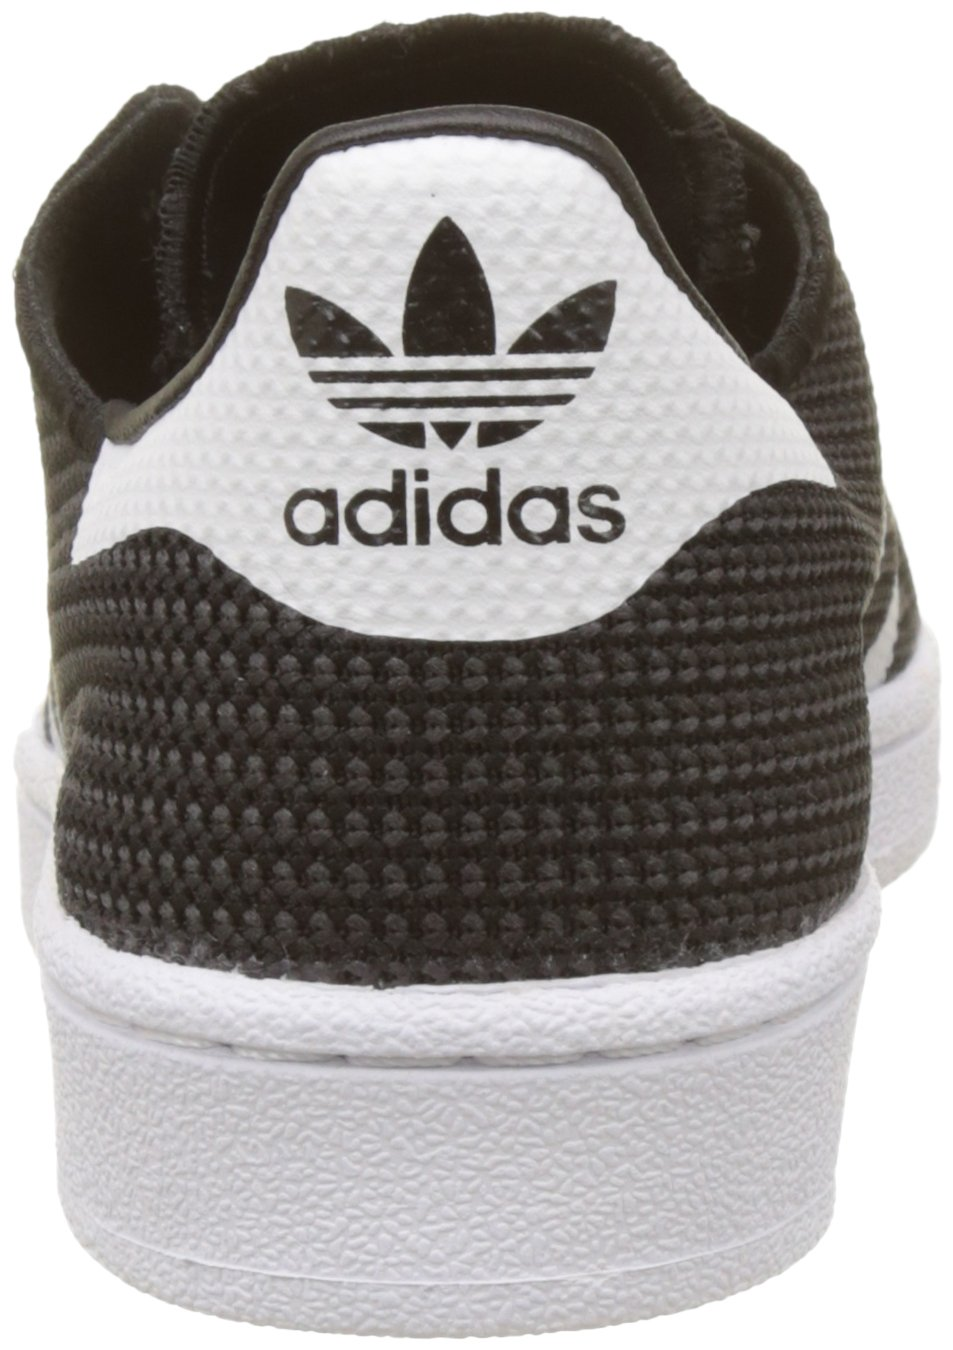 buy popular 1c16d cd3bb Adidas Superstar J – Scarpe Sportive Unisex – Spesavip